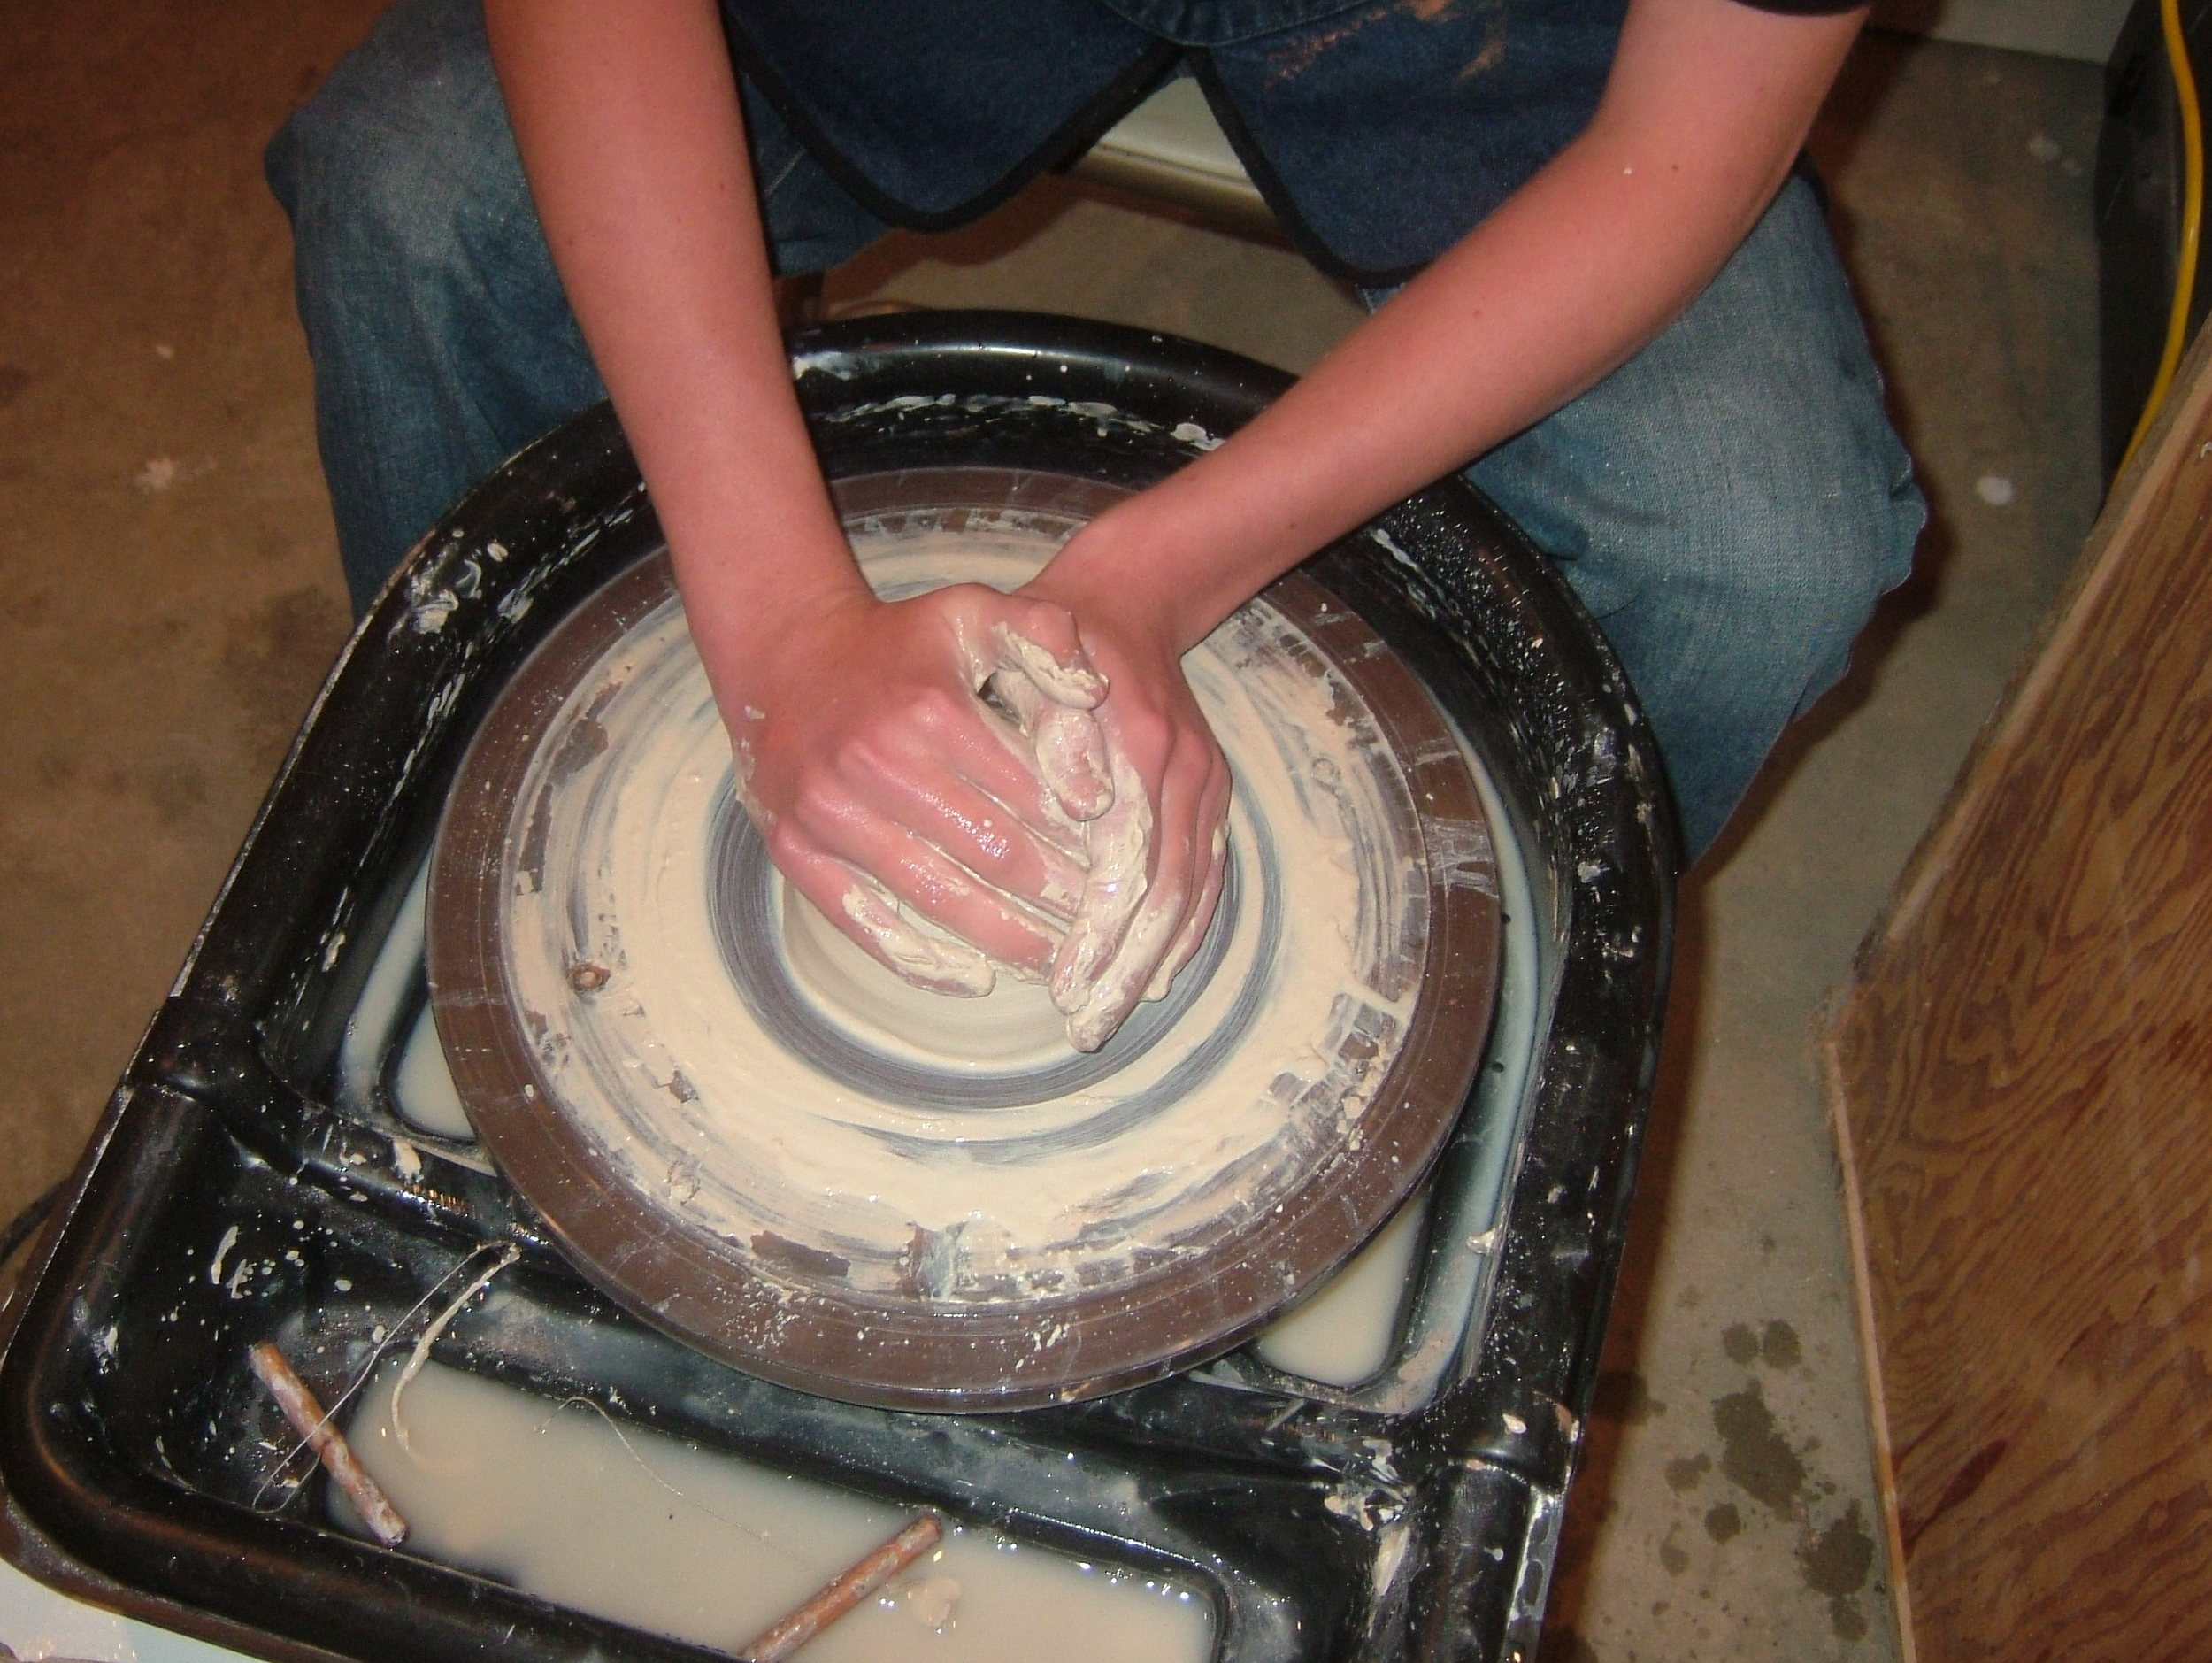 Get your hands dirty on the potter's wheel!